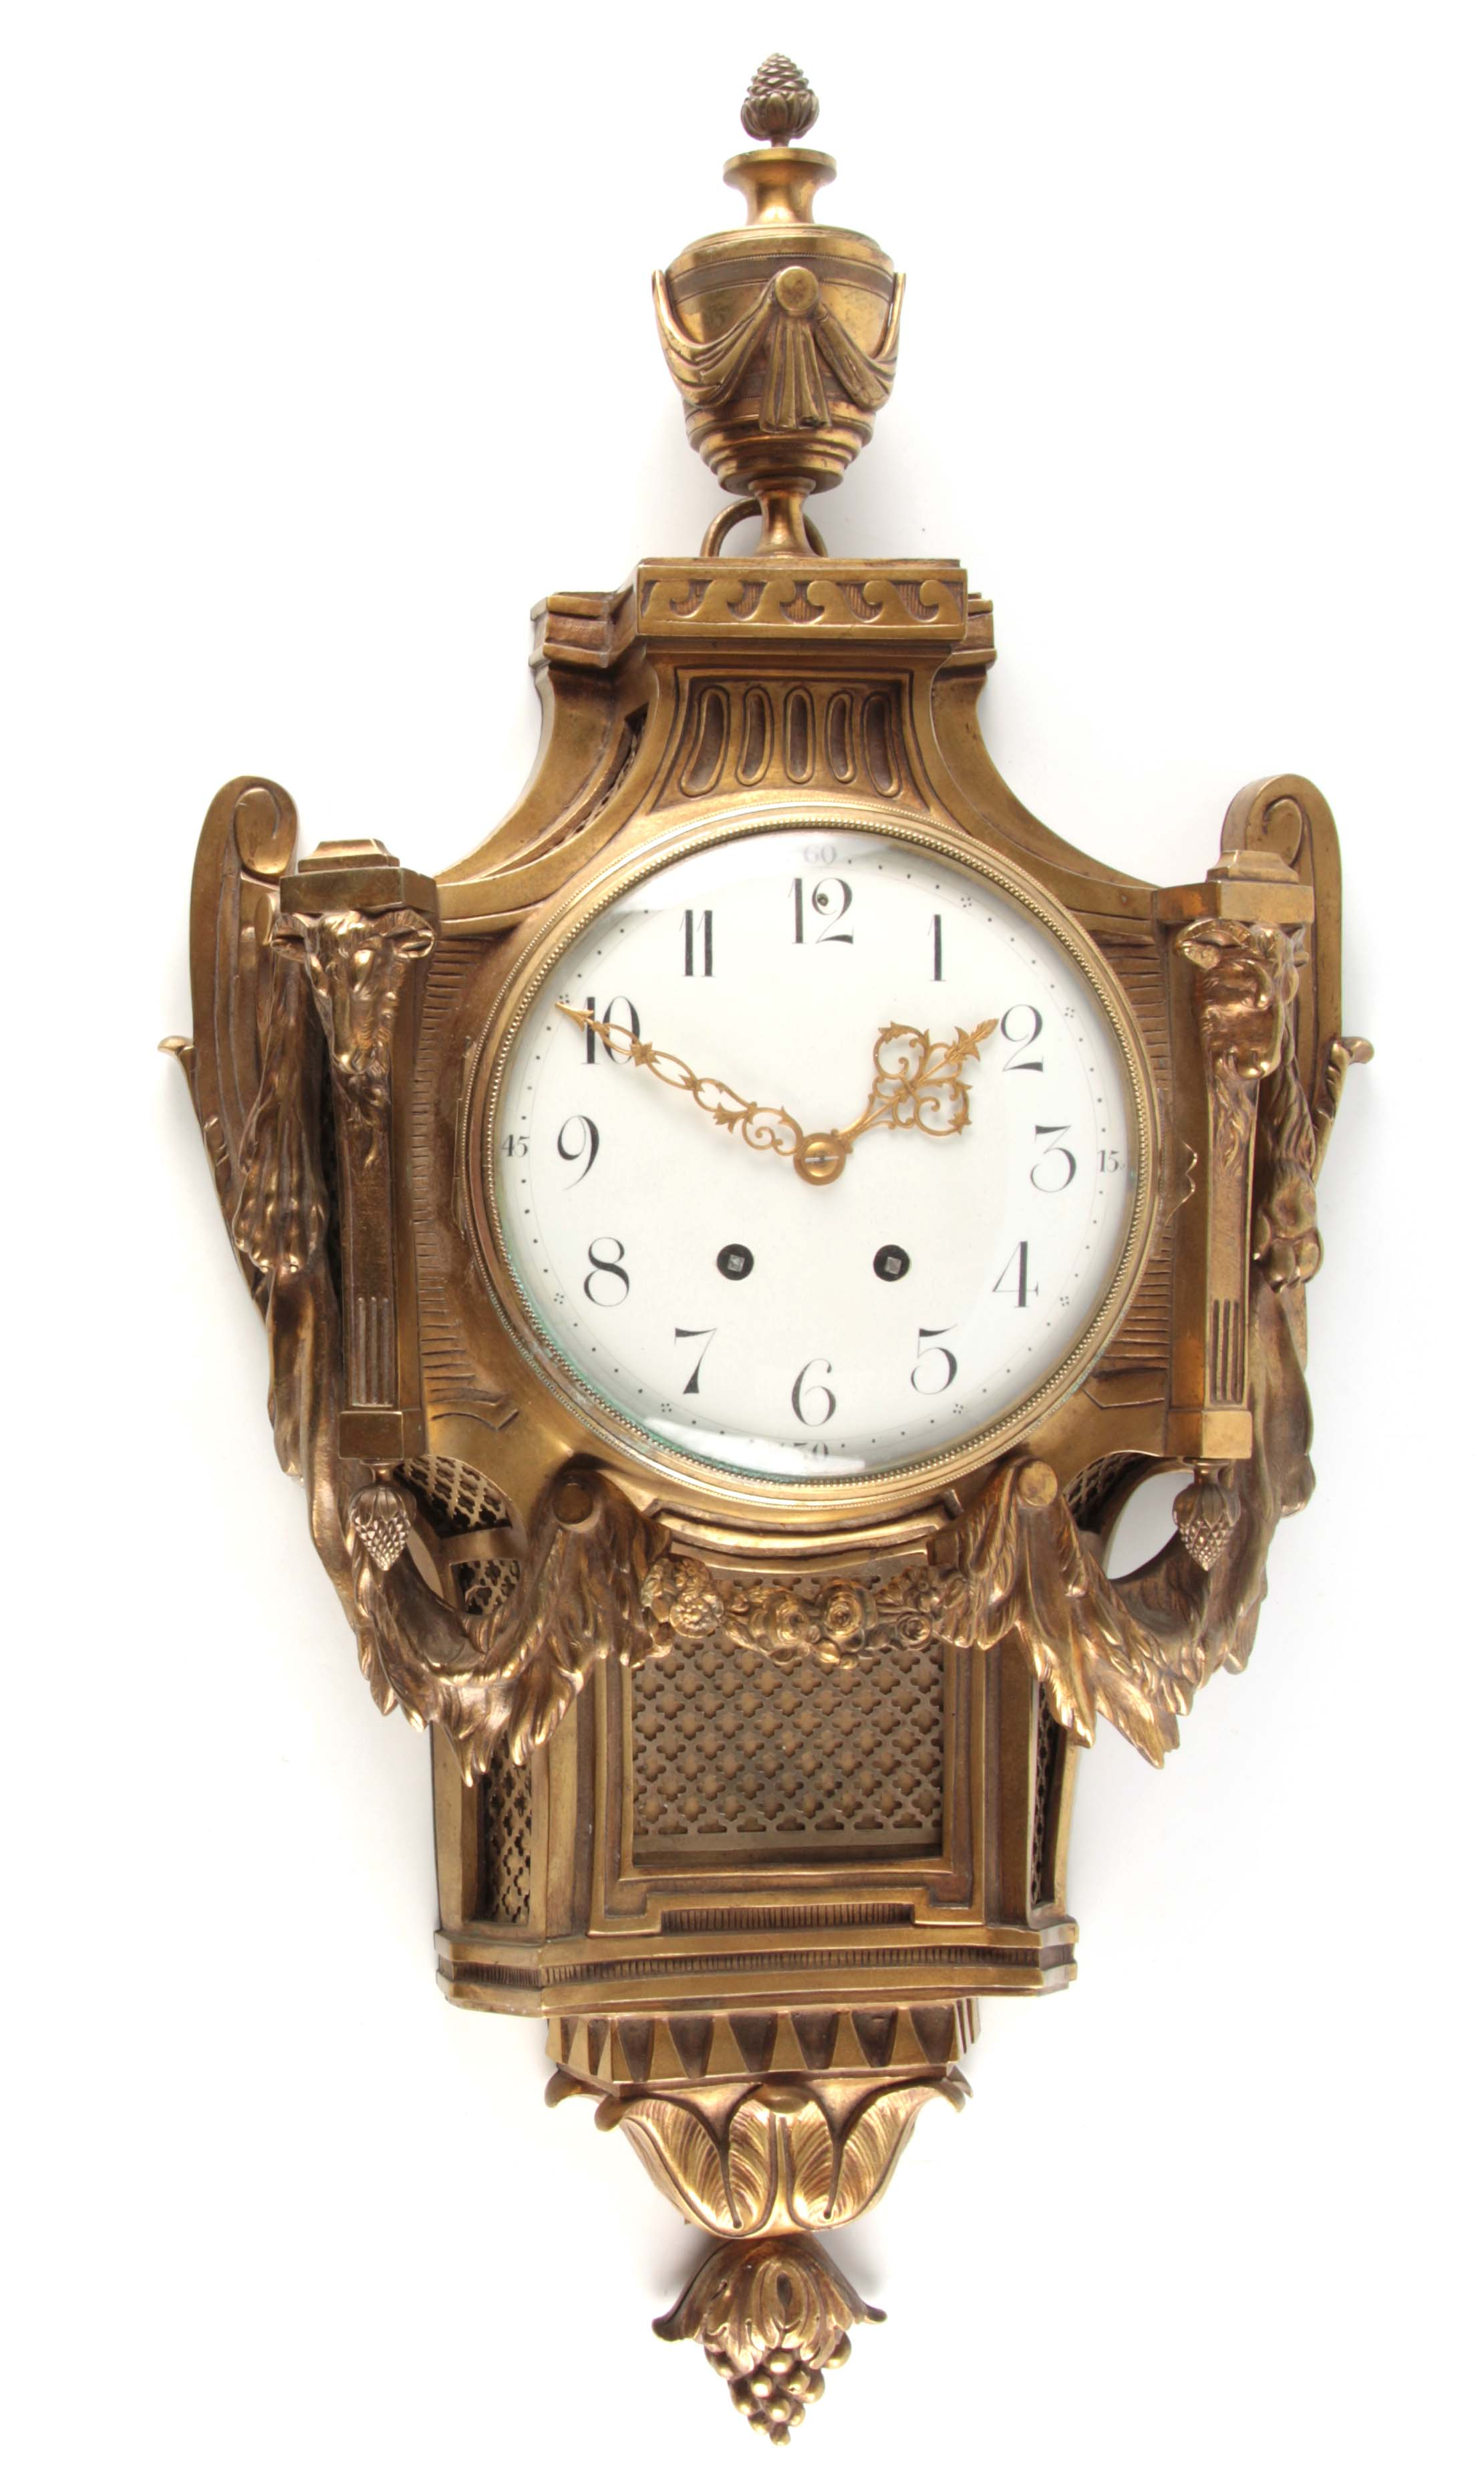 A LATE 19TH CENTURY FRENCH GILT BRASS CARTEL CLOCK with large urn finial and rams head decoration